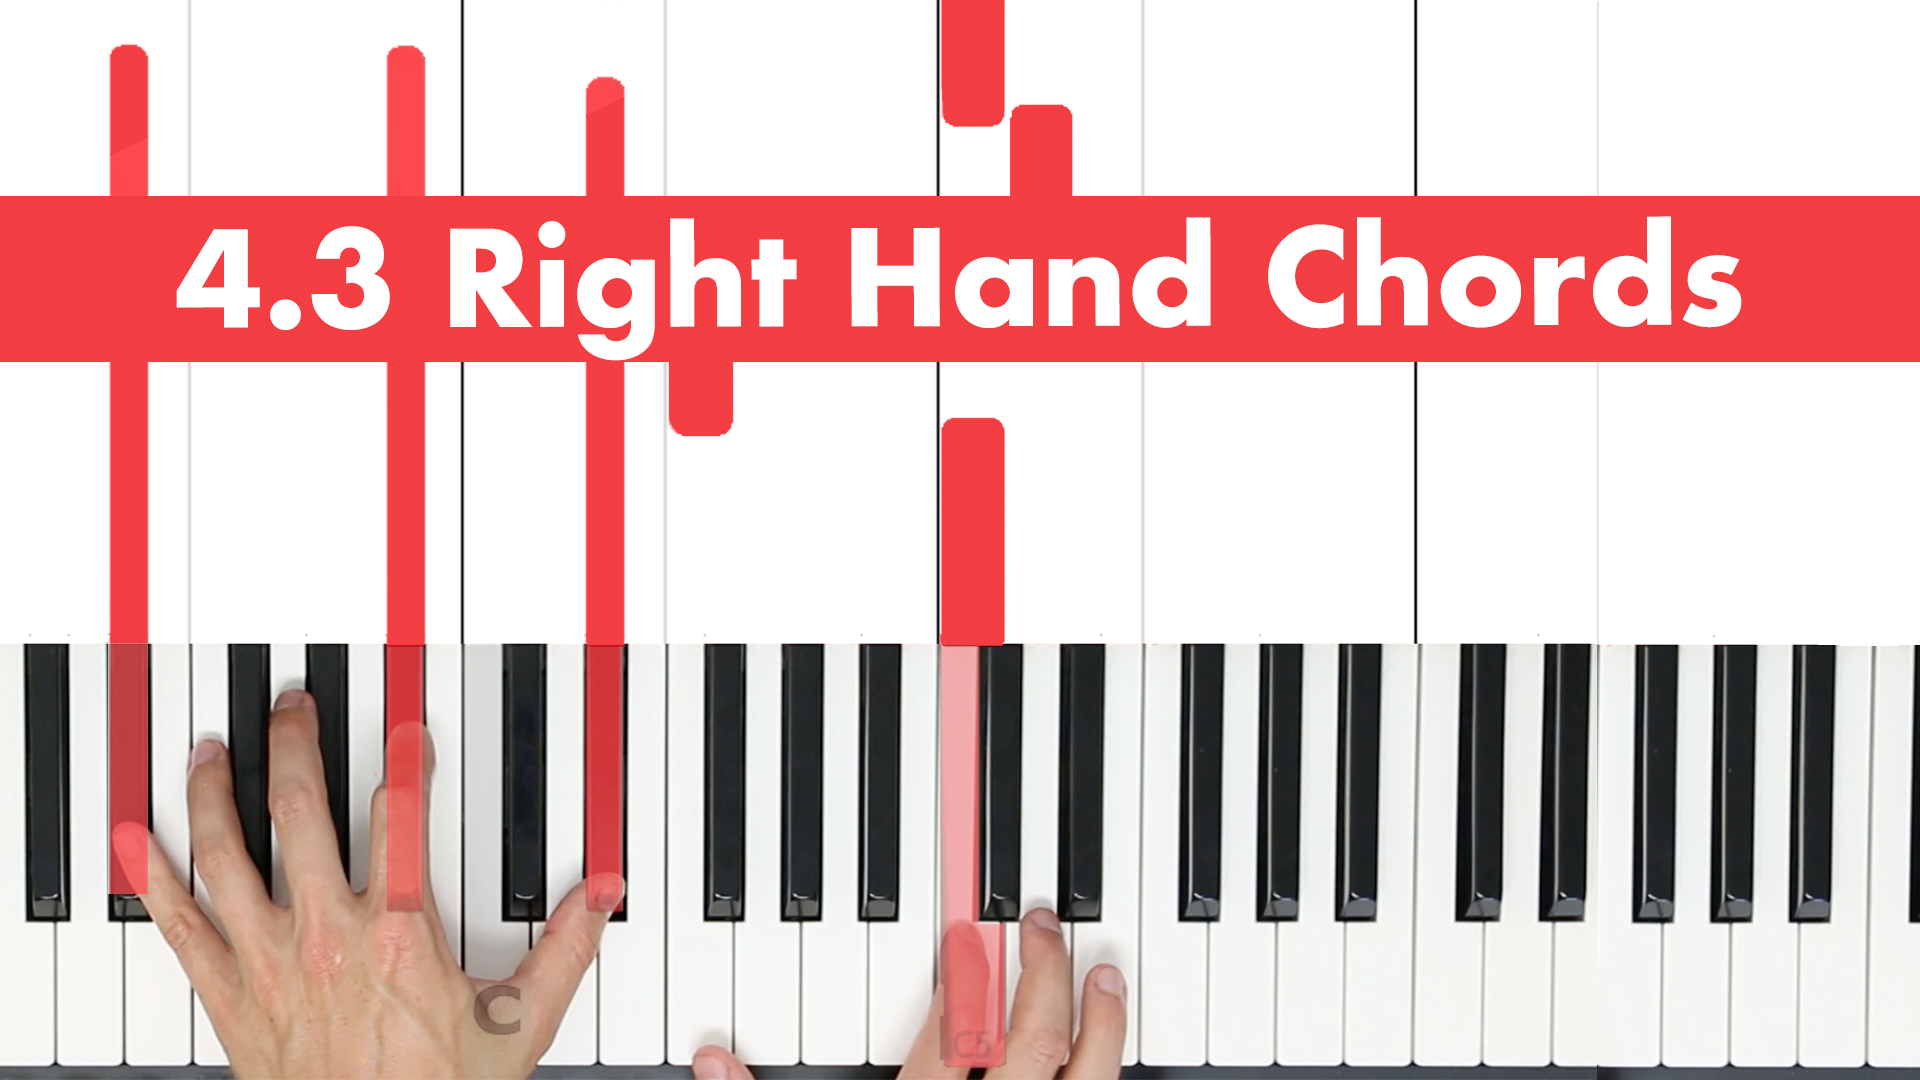 4.3 Right Hand Chords